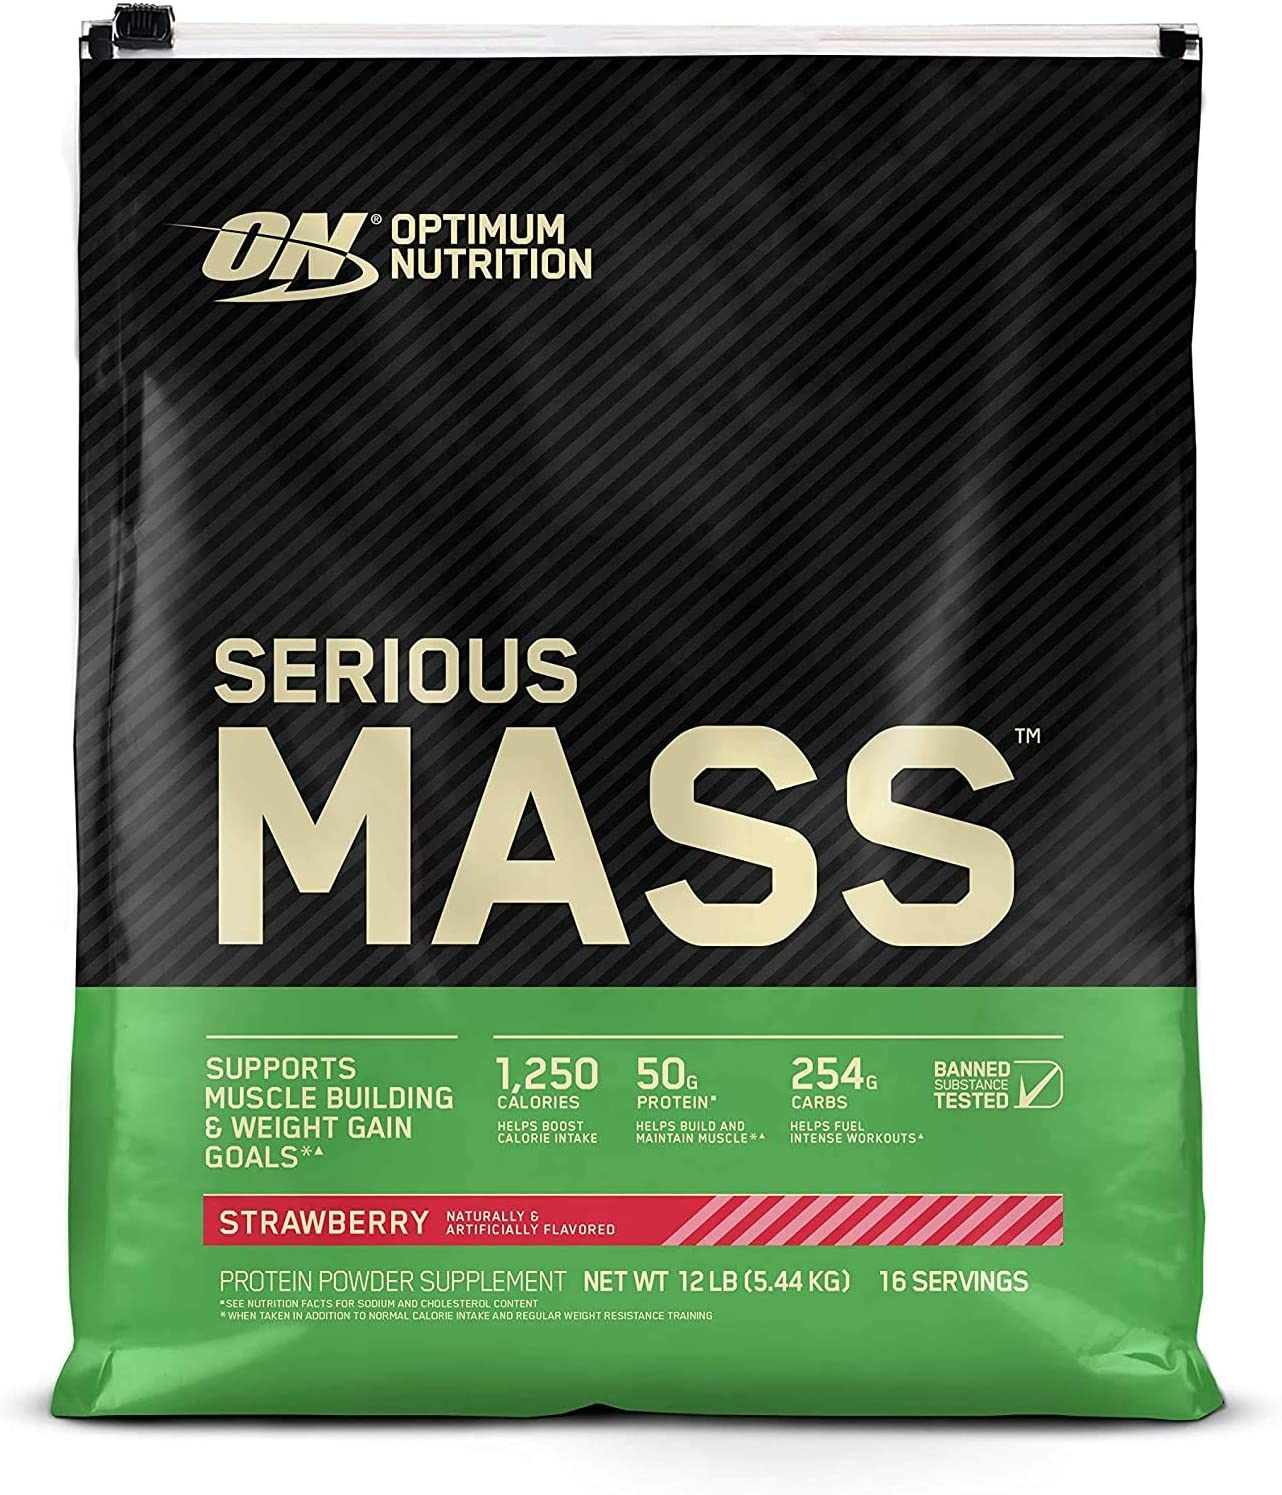 Optimum Nutrition Serious Mass Weight Gainer Protein Powder, Vitamin C, Zinc and Vitamin D for Immune Support, Strawberry, 12 Pound (Packaging May Vary)